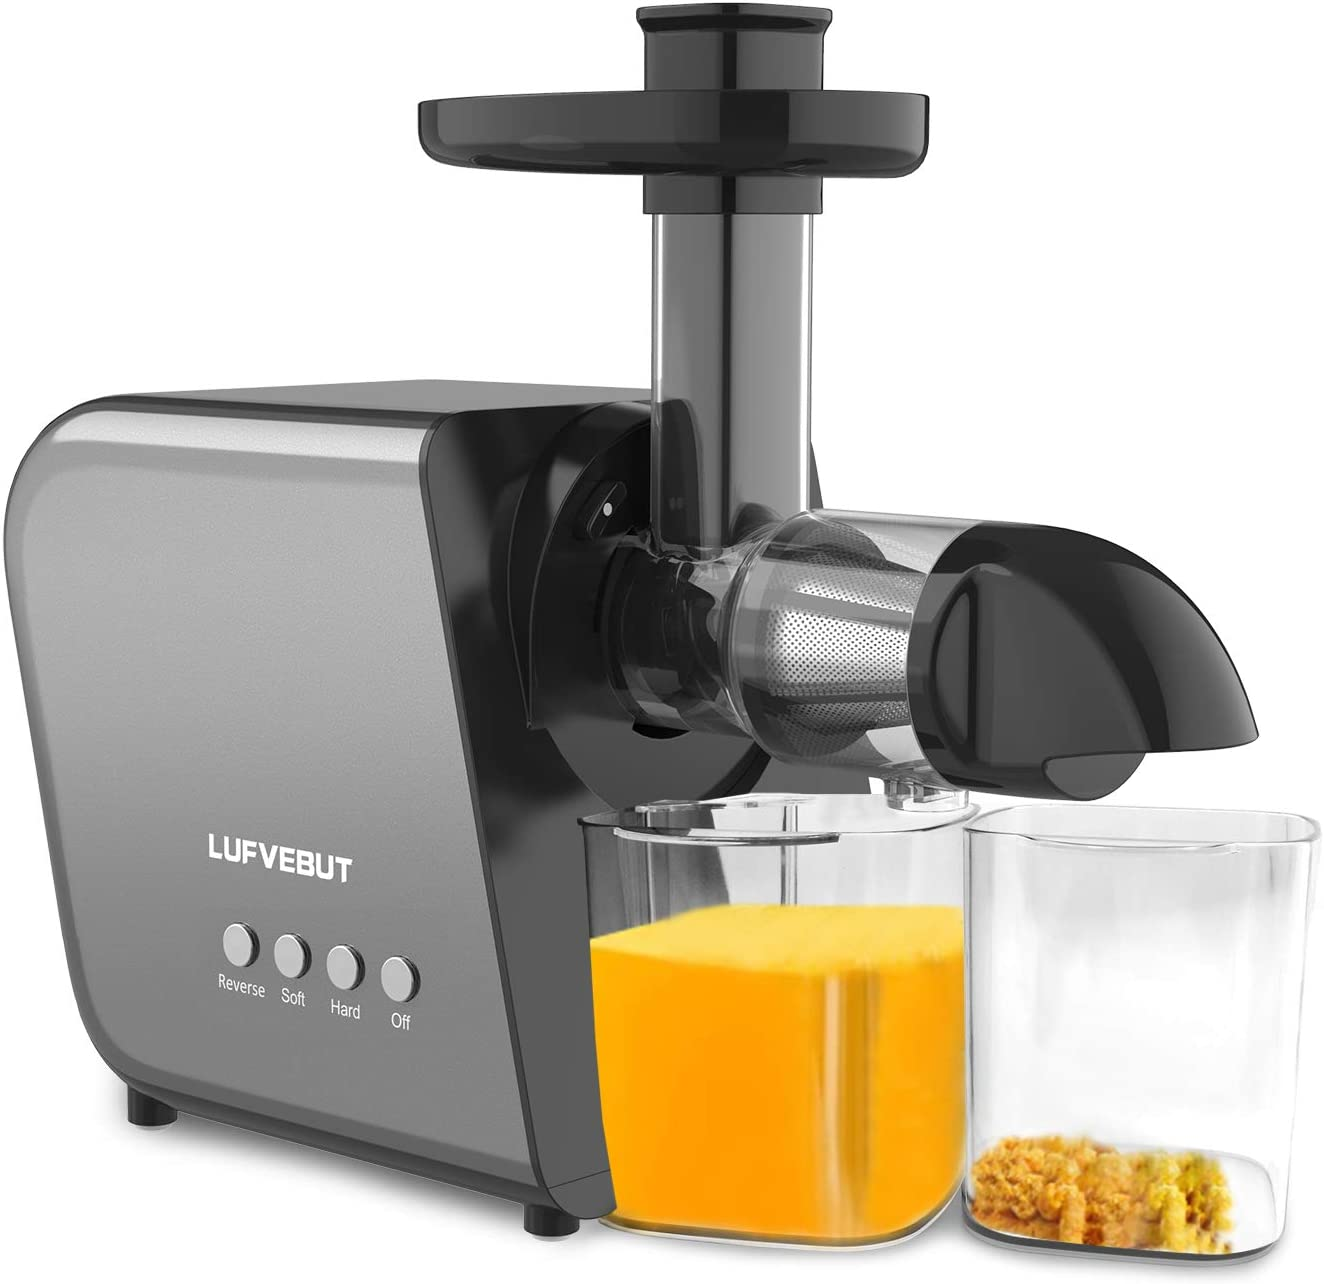 Slow Masticating Juicer Machines, Cold Press Slow Juicer Extractor for Fruit and Vegetable Celery Ginger, Easy to Clean, Anti-oxidation Fresher Vitamins with Reverse Function and Brush